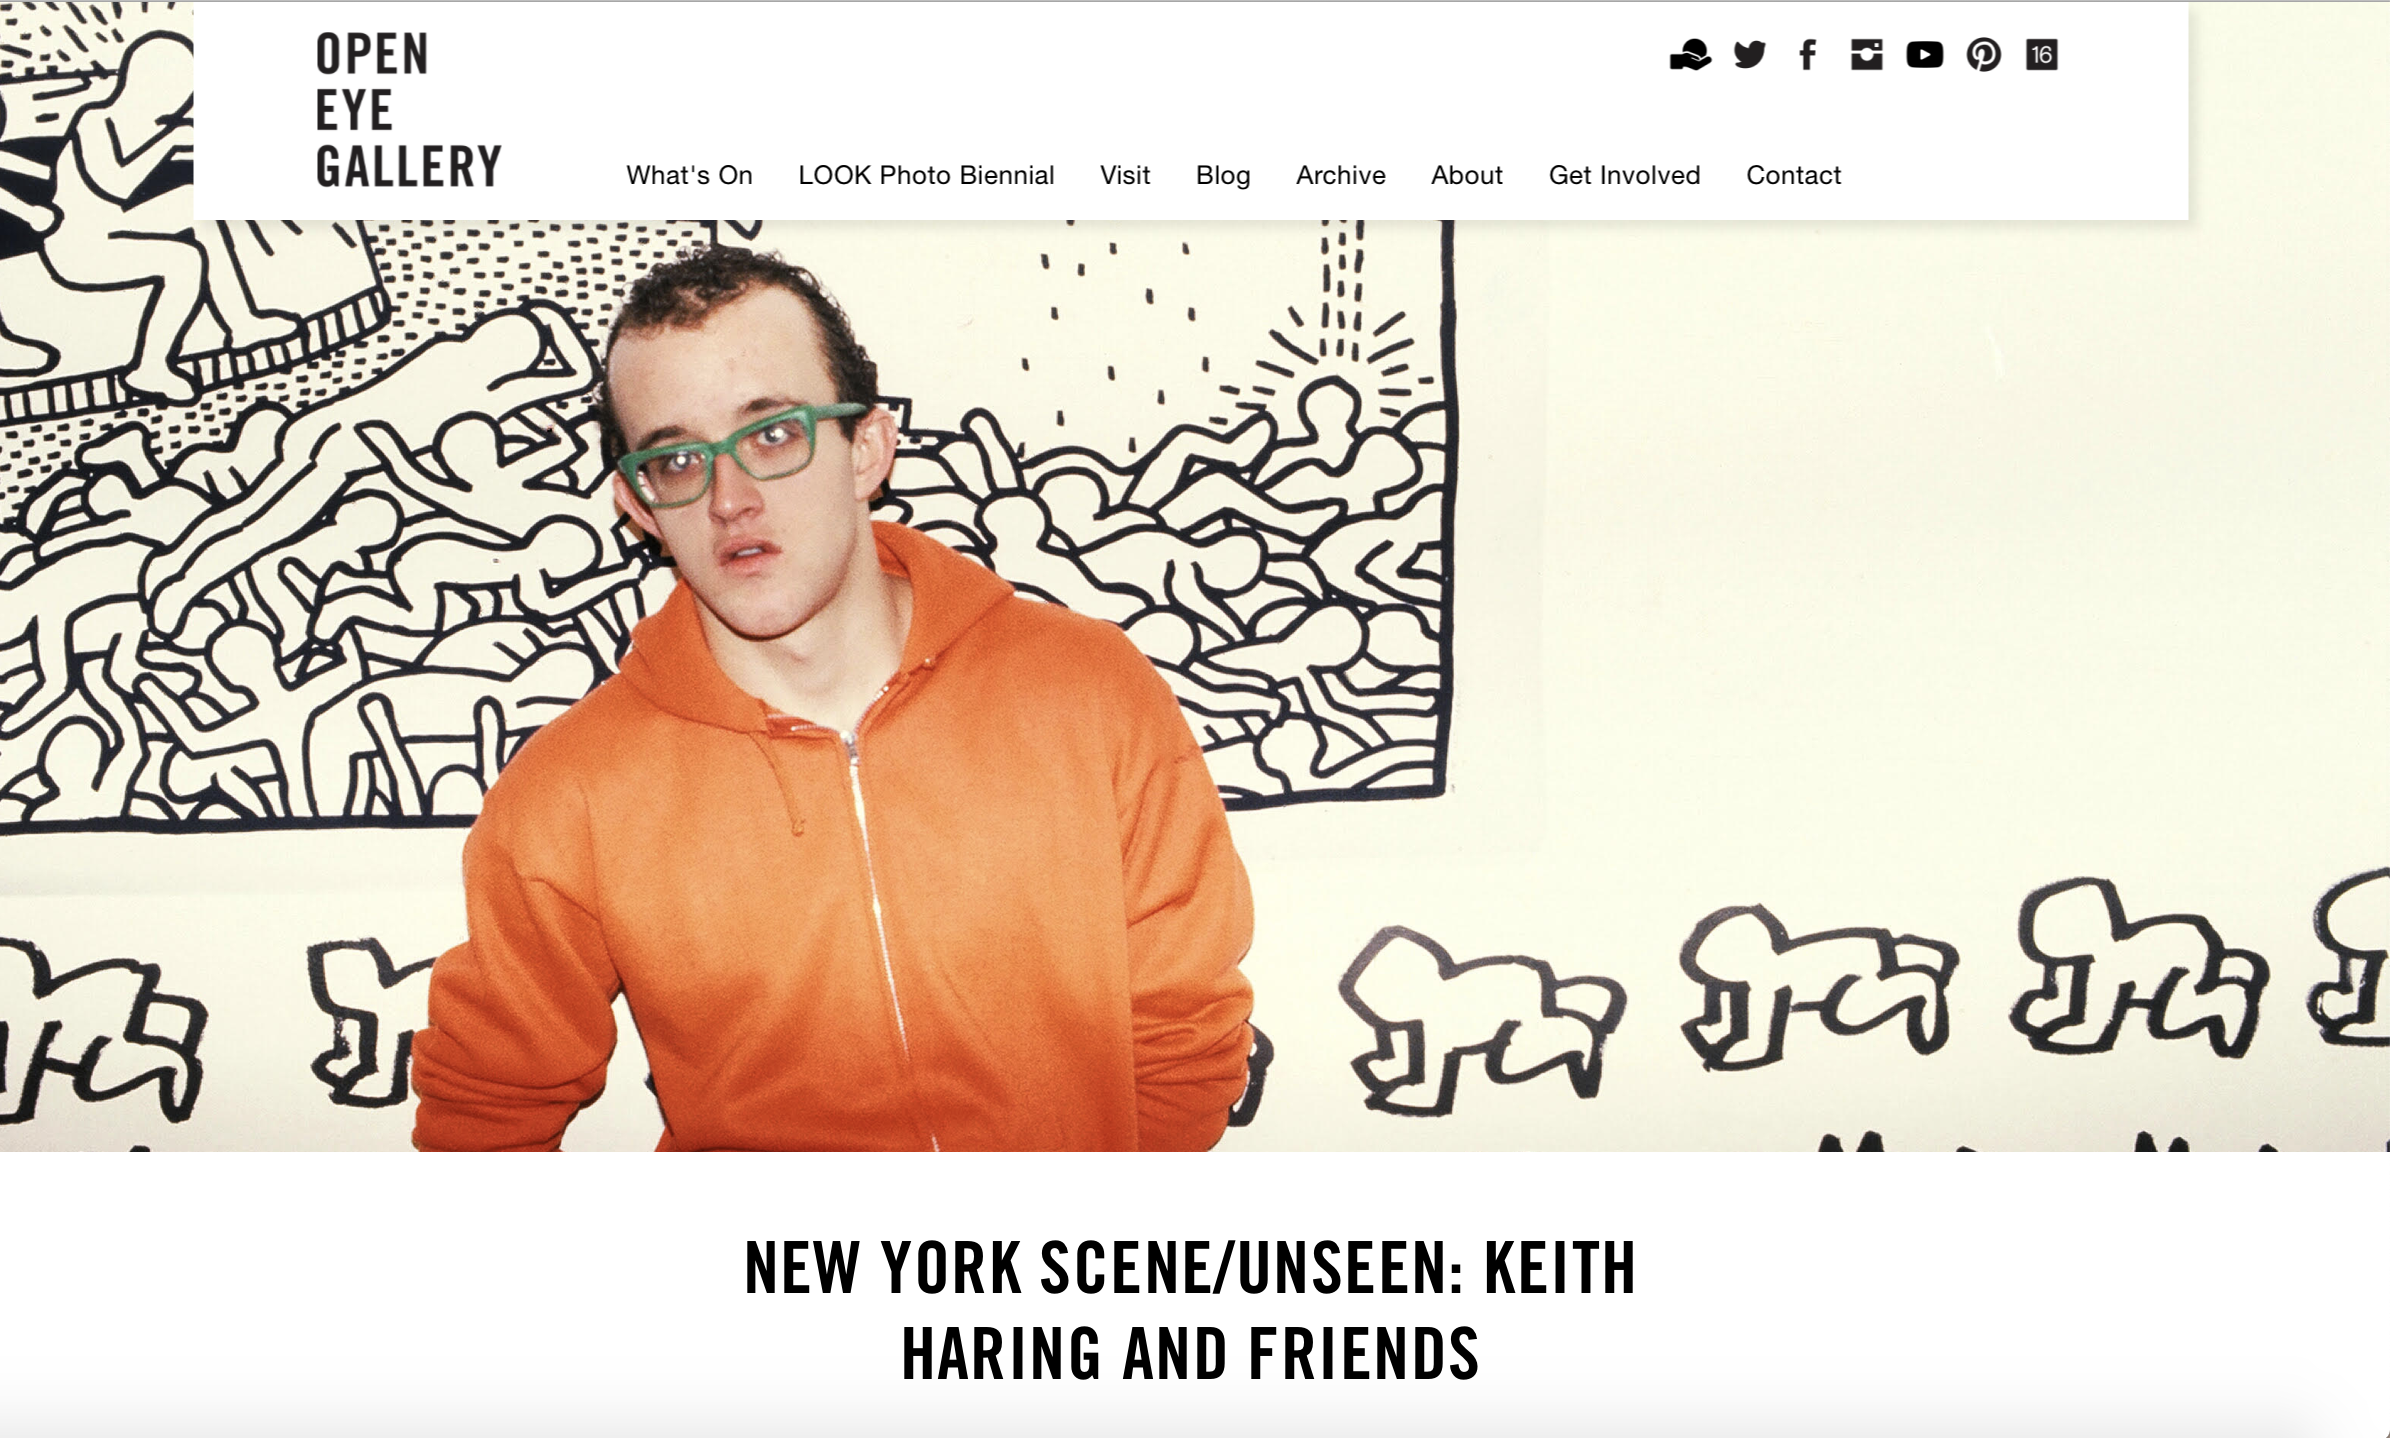 Curator : New York Scene/ Unseen Kieth Haring and Friends.  Open Eye Gallery Liverpool